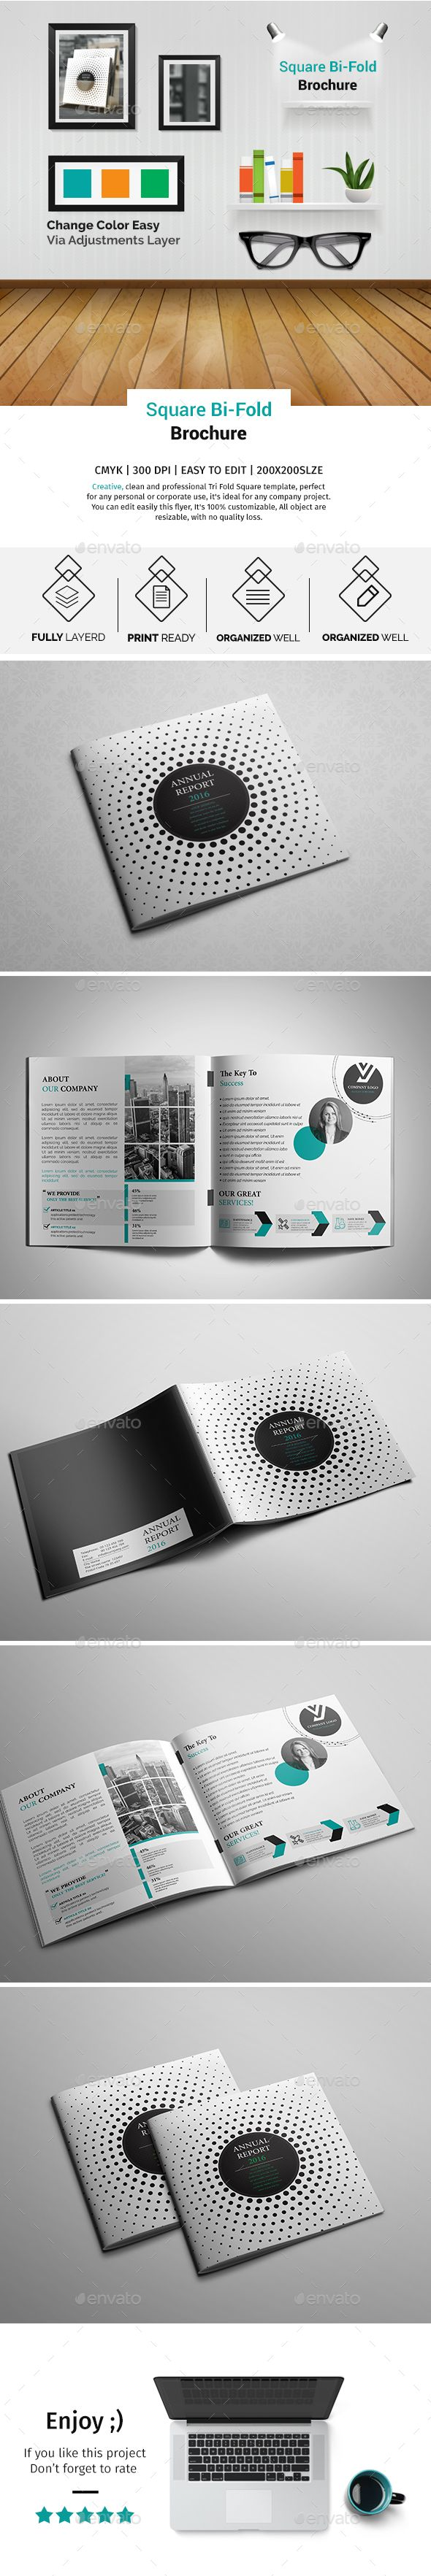 Best Square Brochure Template Images On   Brochure